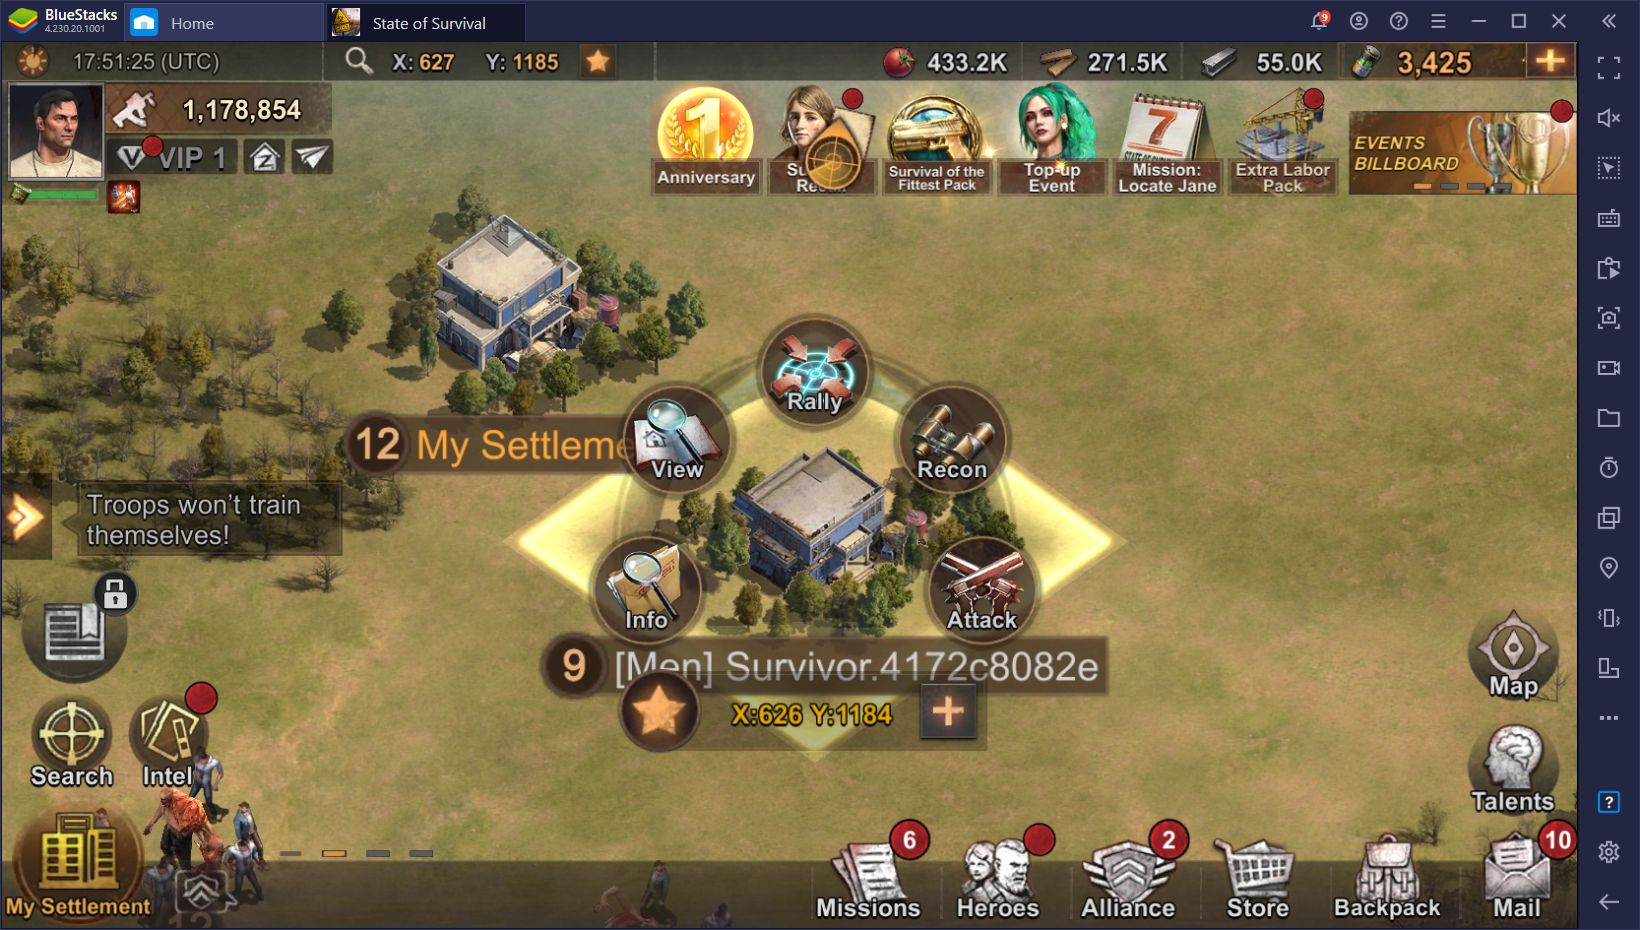 State of Survival Tips to Maximize Resource Farming